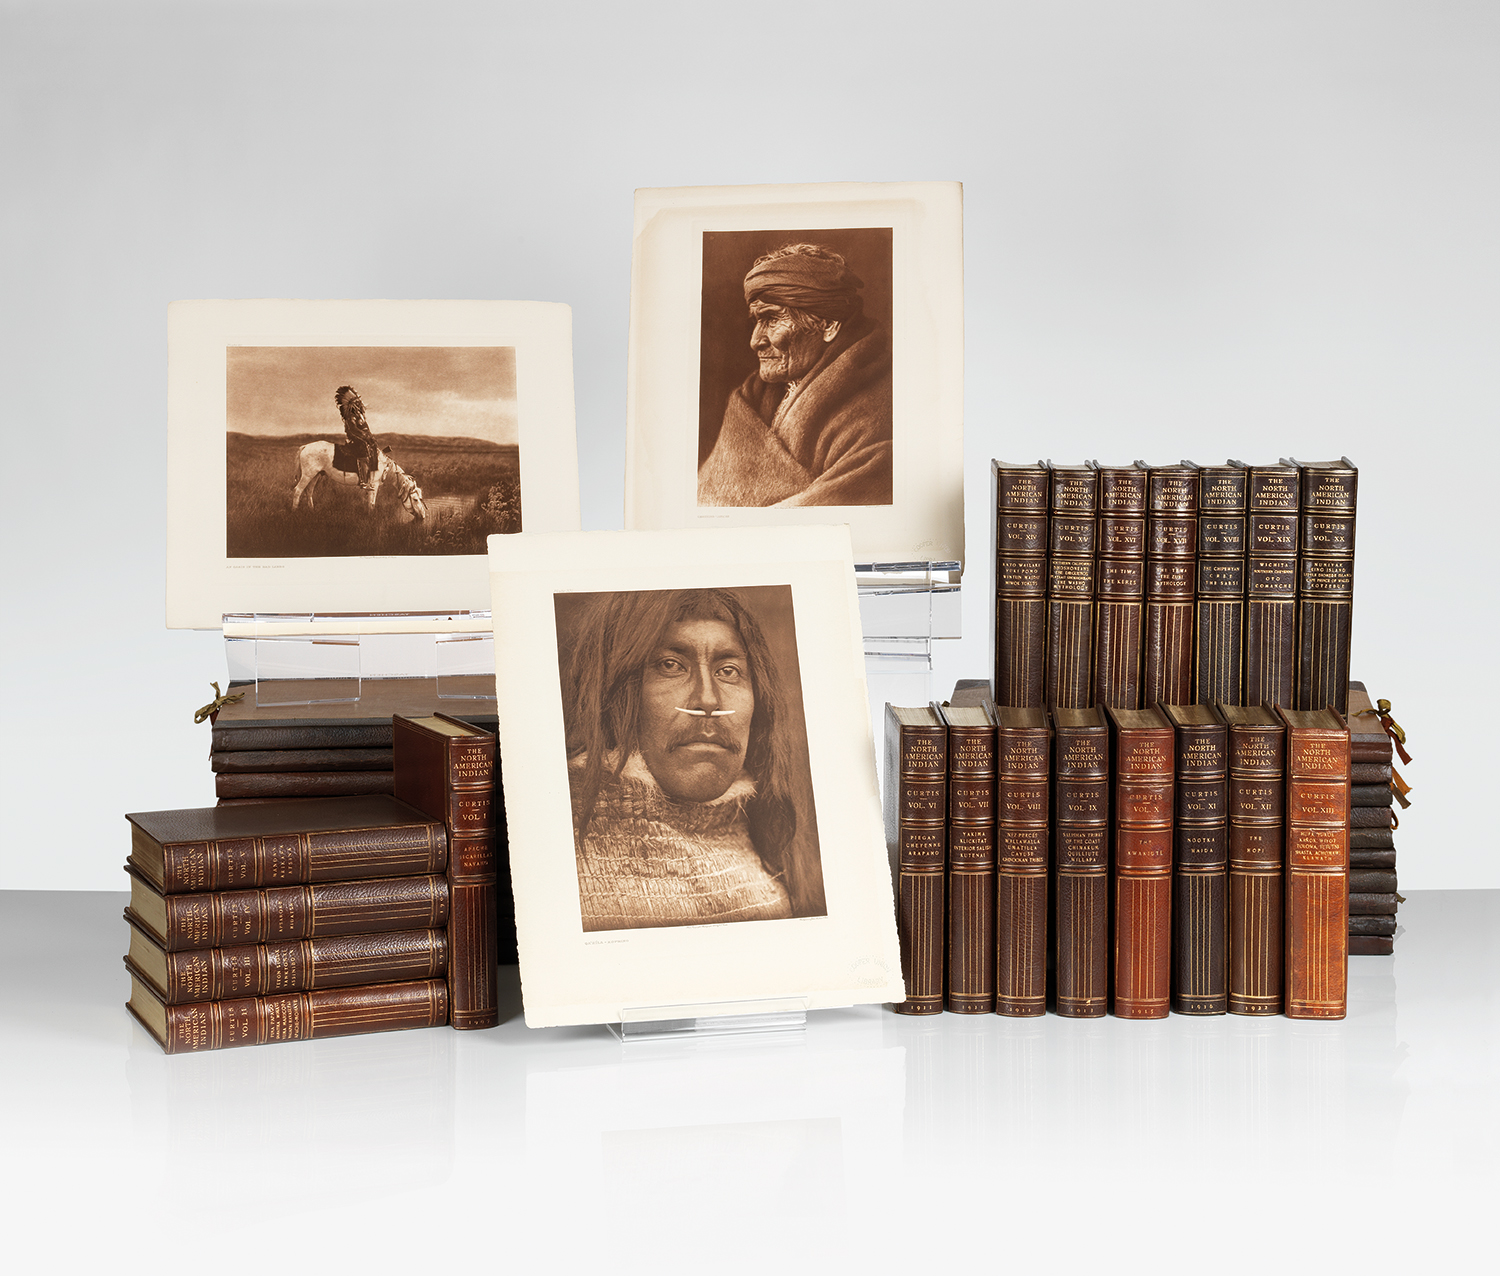 Overview The North American Indian comprises 20 text volumes and 20 folios containing large-format photogravures. The North American Indian by Edward S Curtis - courtesy of Swann Auction Galleries